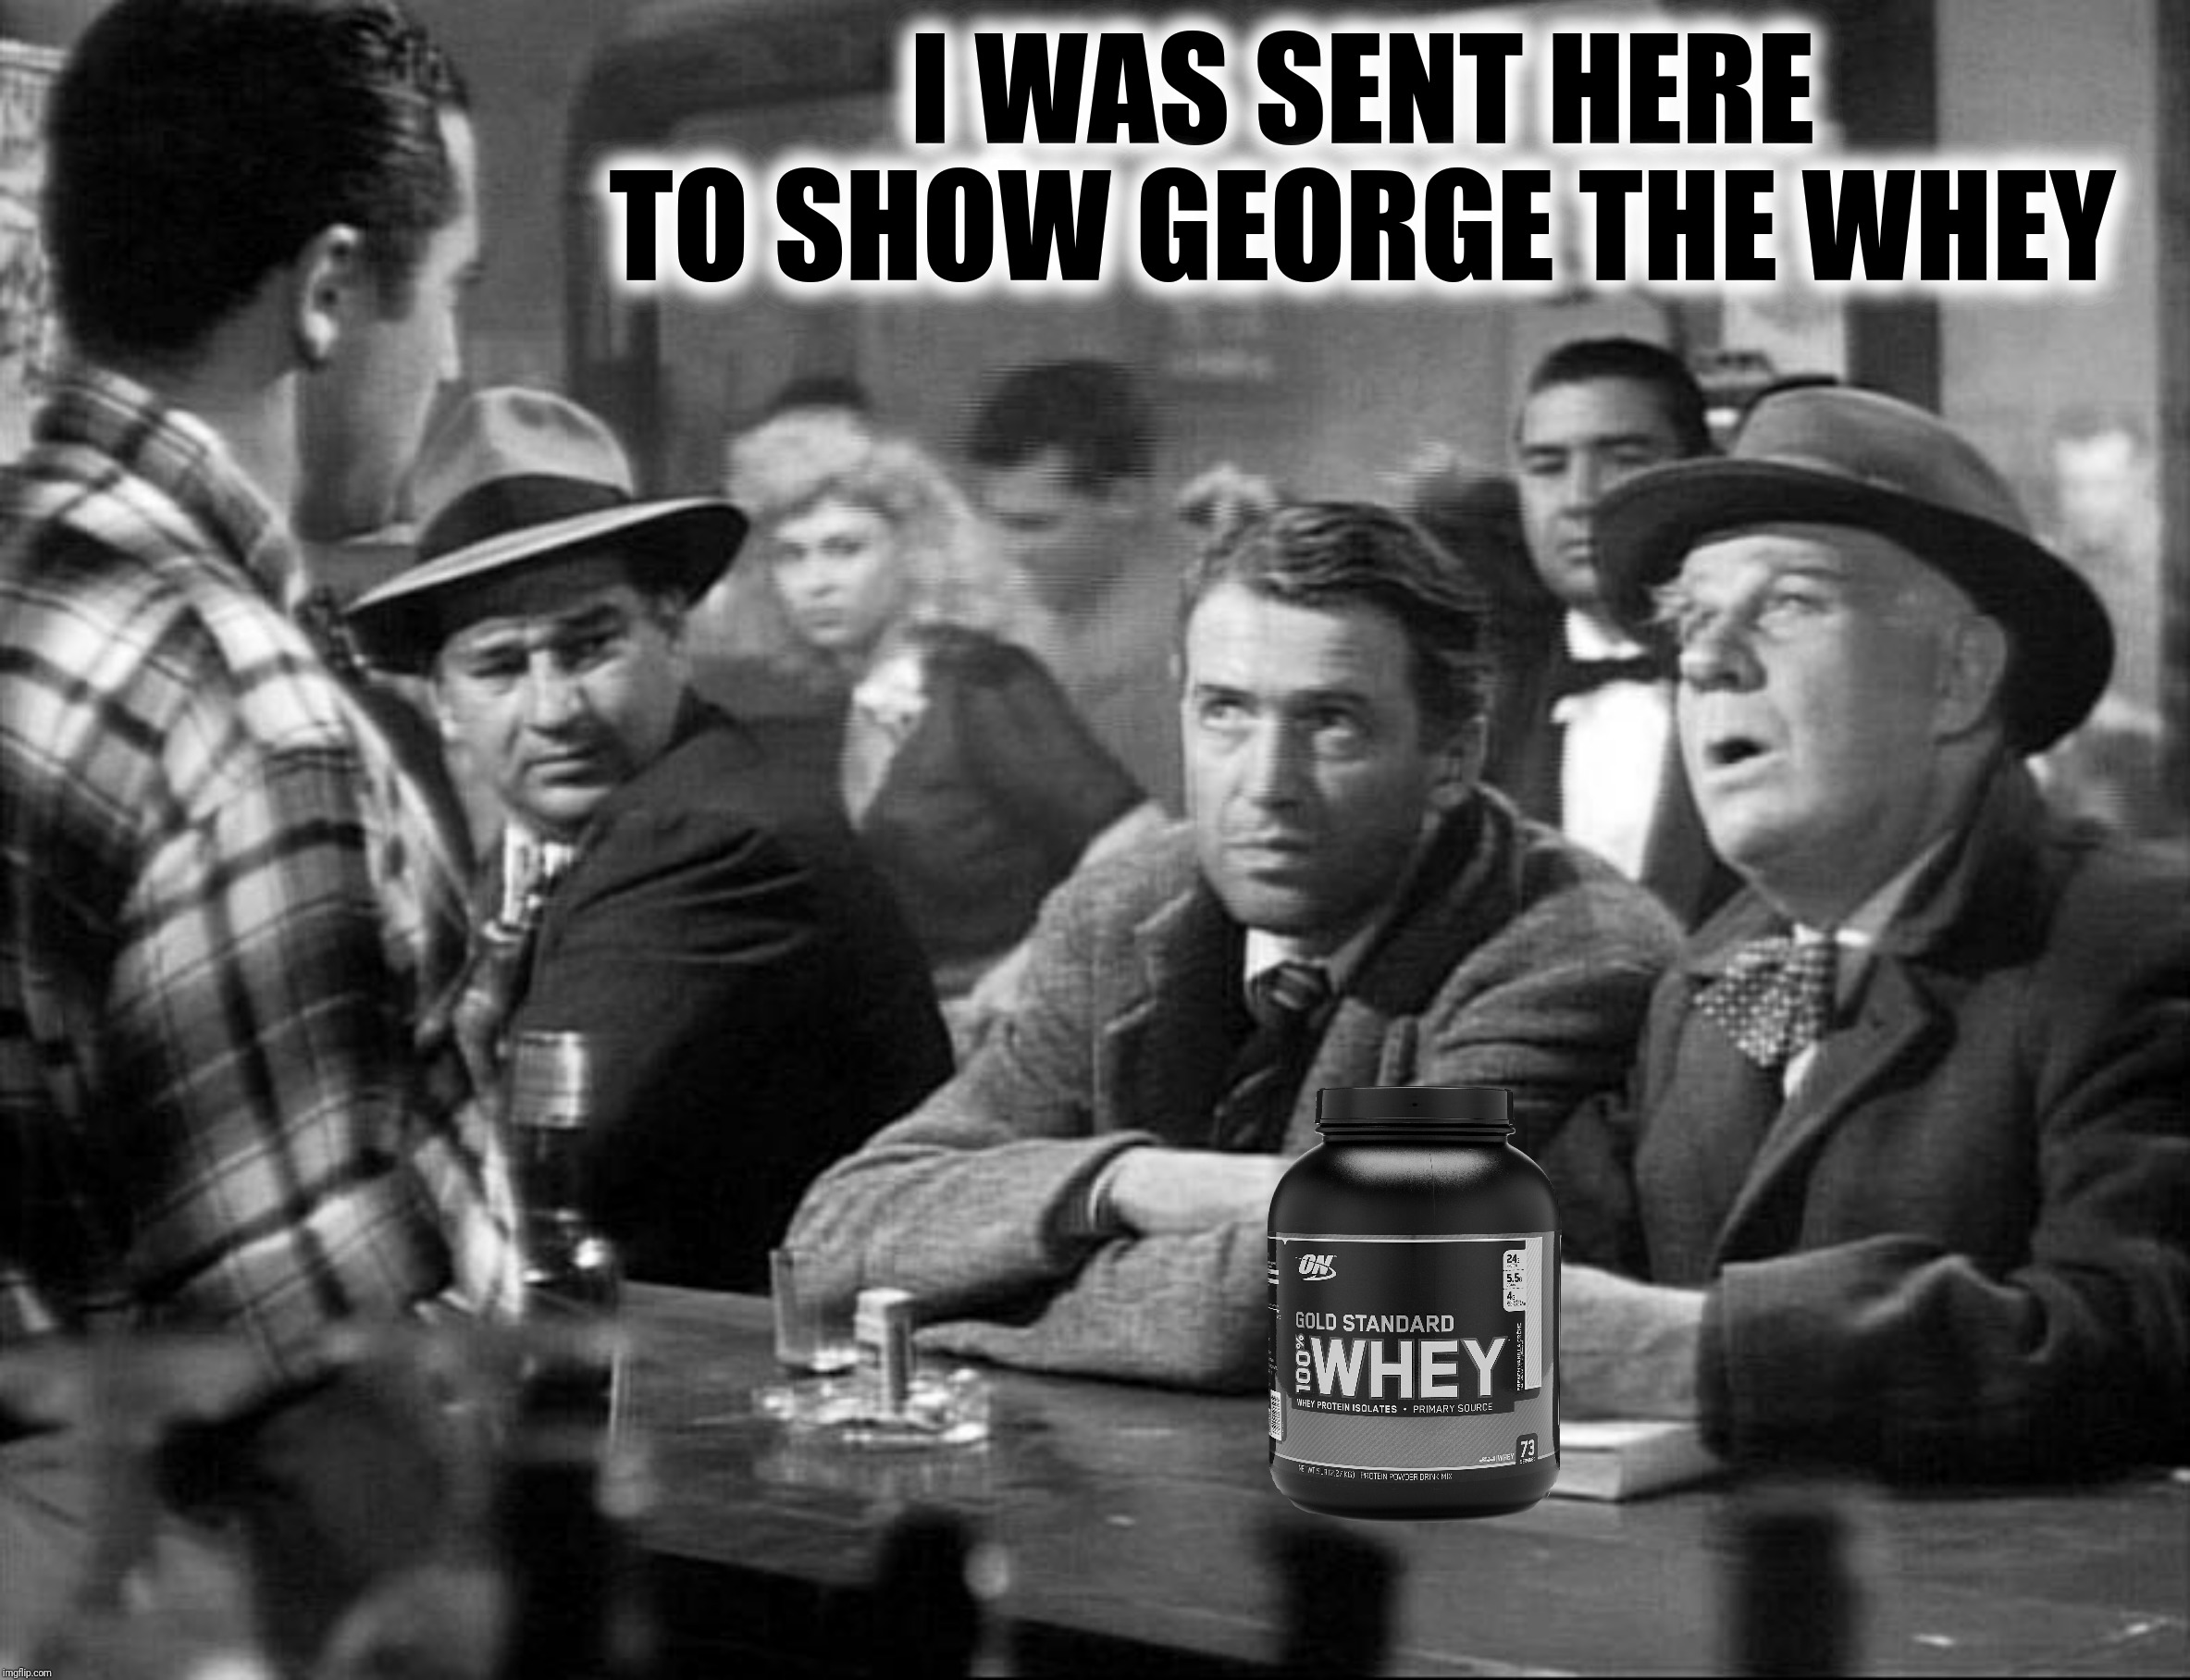 It's A Wonderful Life 2019 | I WAS SENT HERE TO SHOW GEORGE THE WHEY | image tagged in it's a wonderful life,whey,george bailey | made w/ Imgflip meme maker